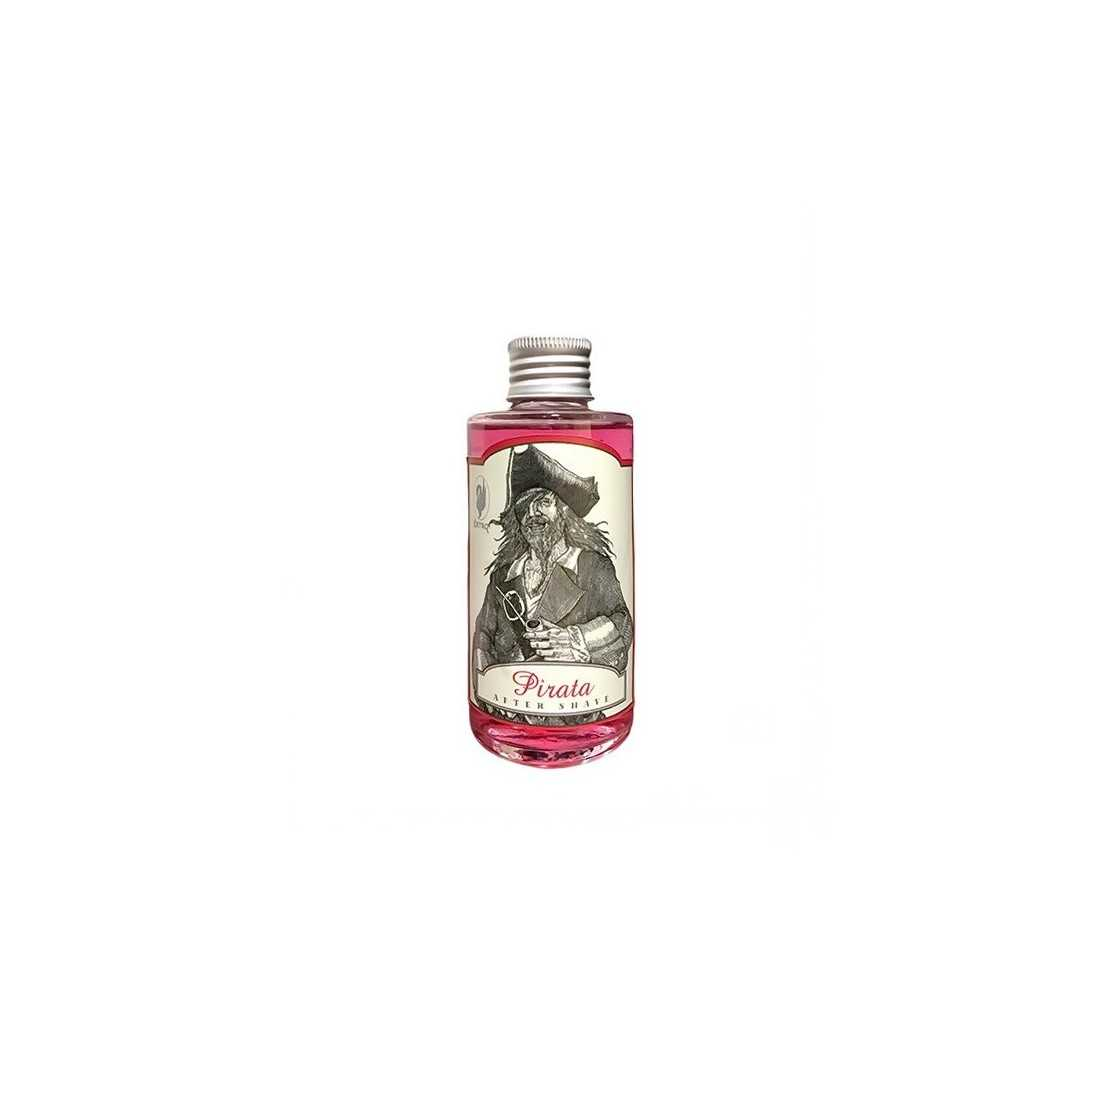 Extro Pirata After Shave 125ml 1500 Extro After shaves €12.50  product reduction percent€10.08 6c7eccacce8